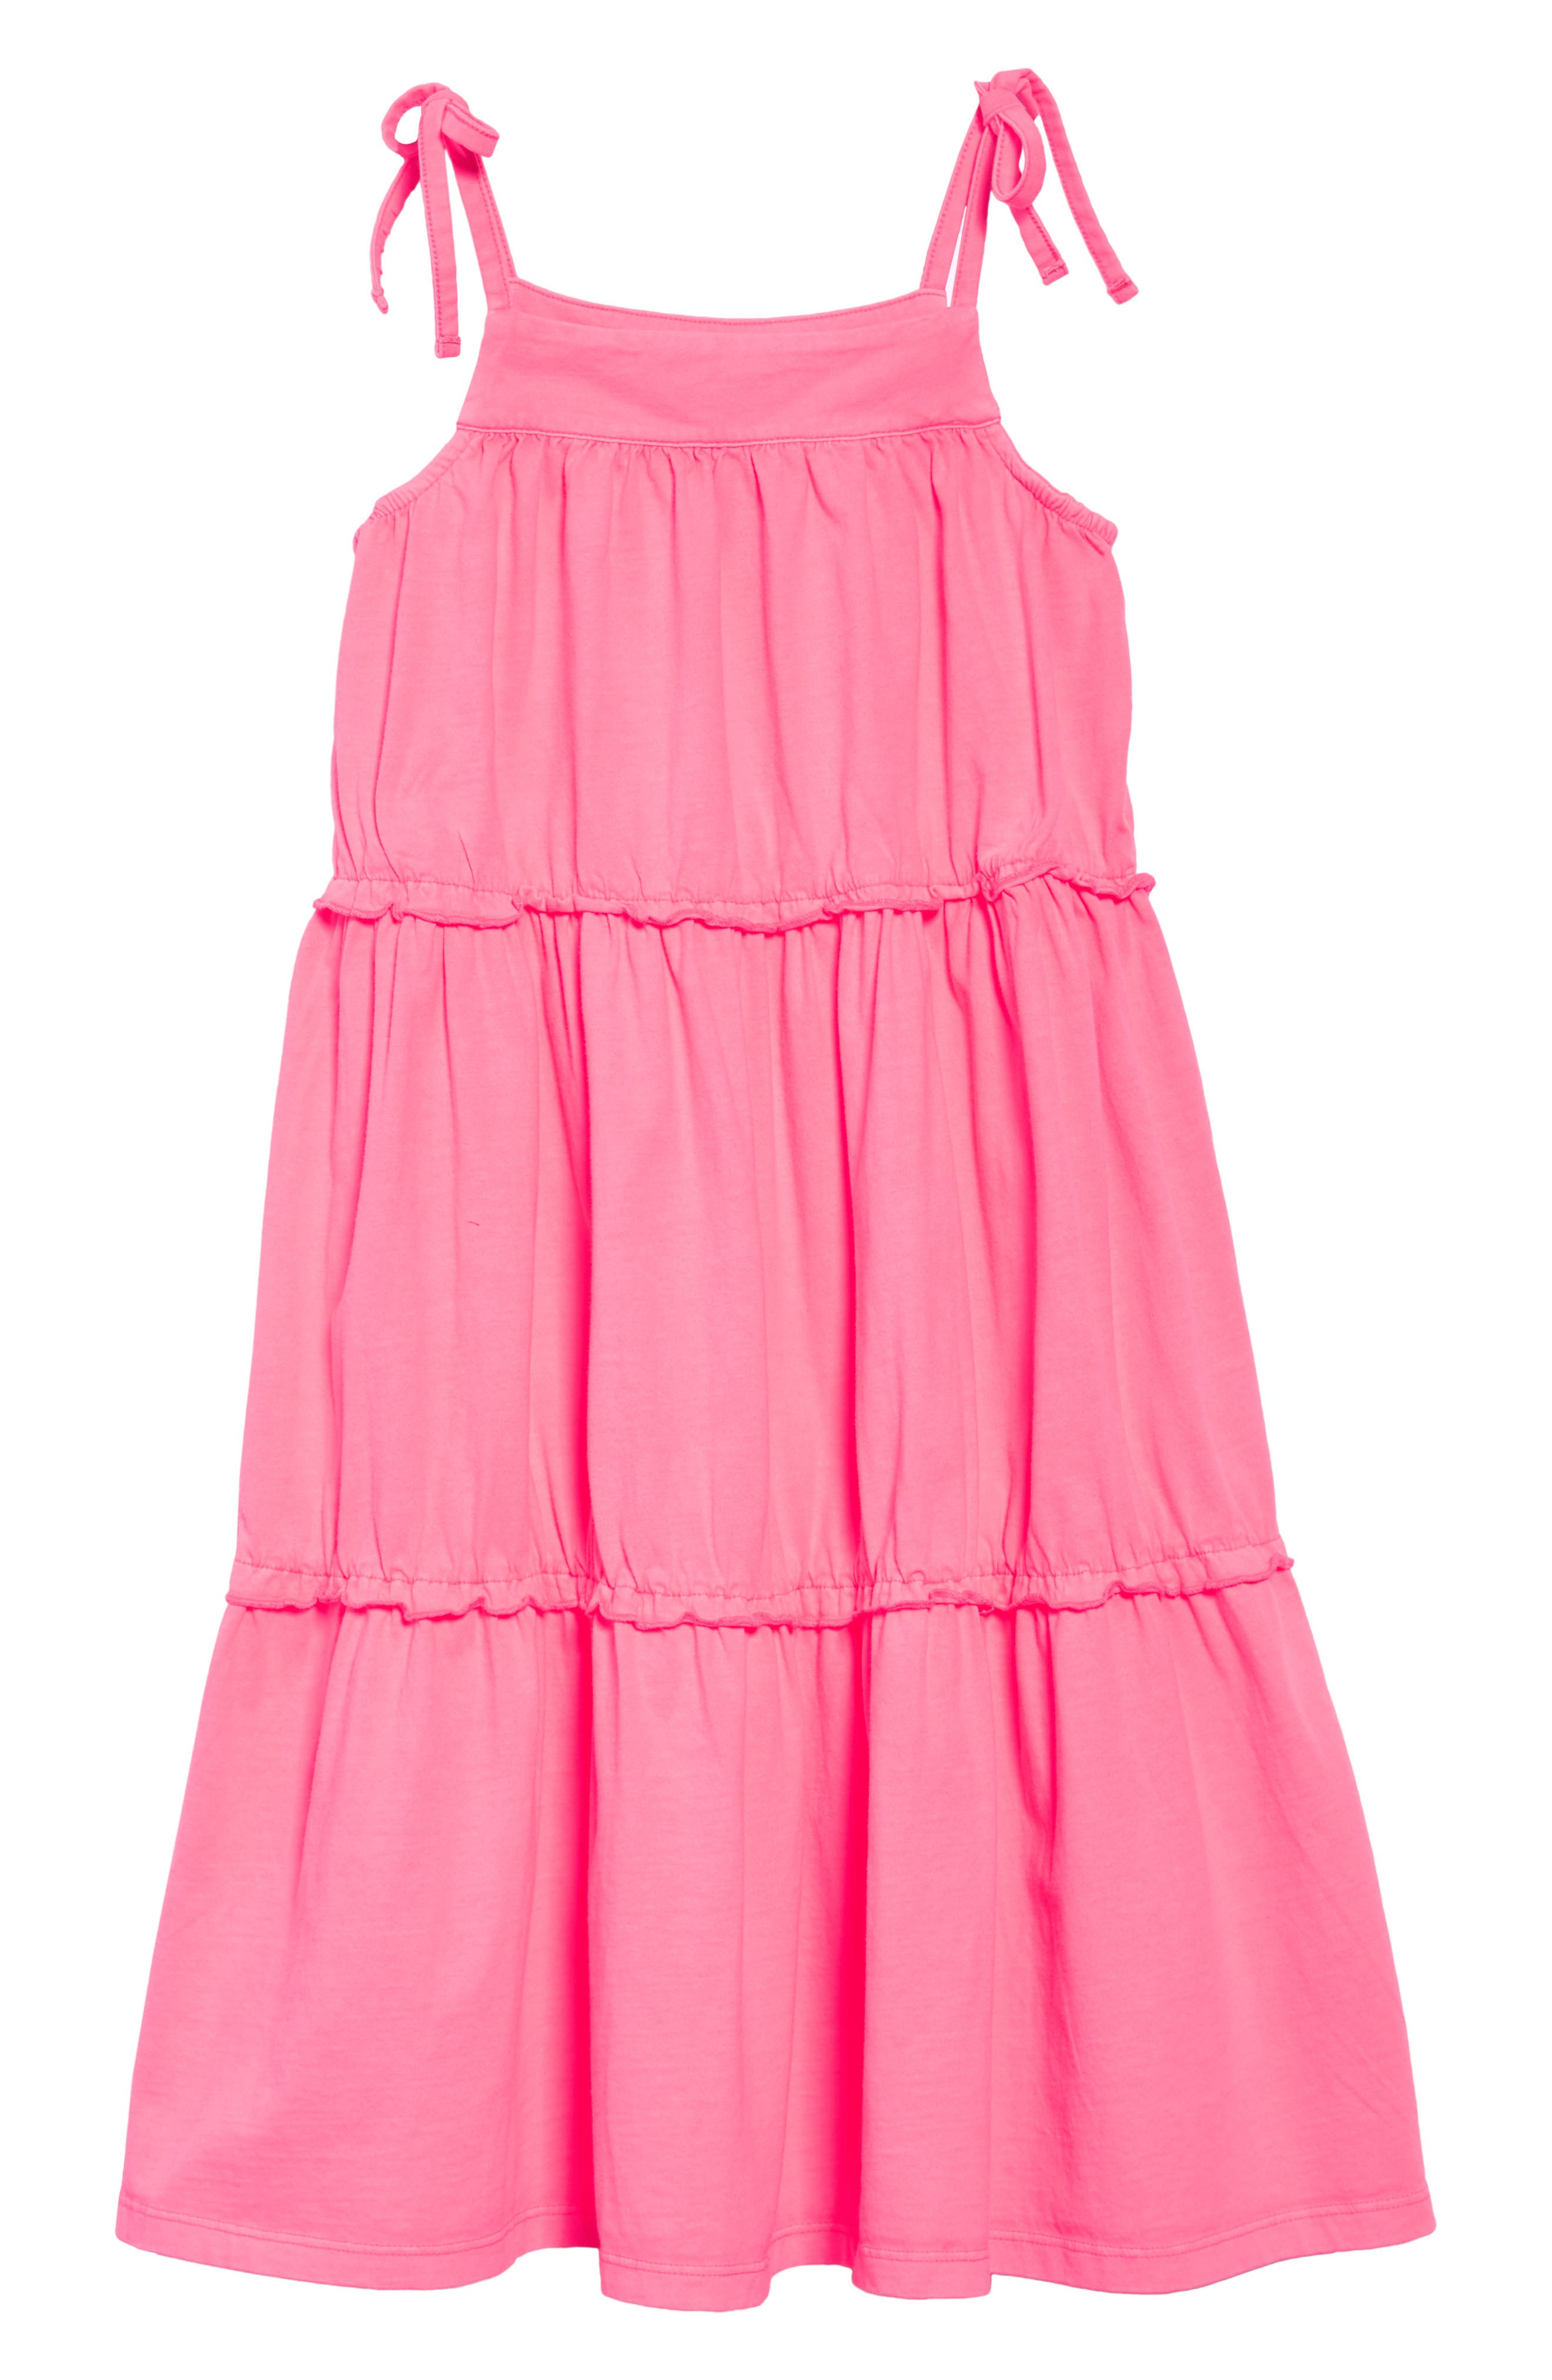 Tiered Sundress,                         Main,                         color, Parasol Pink